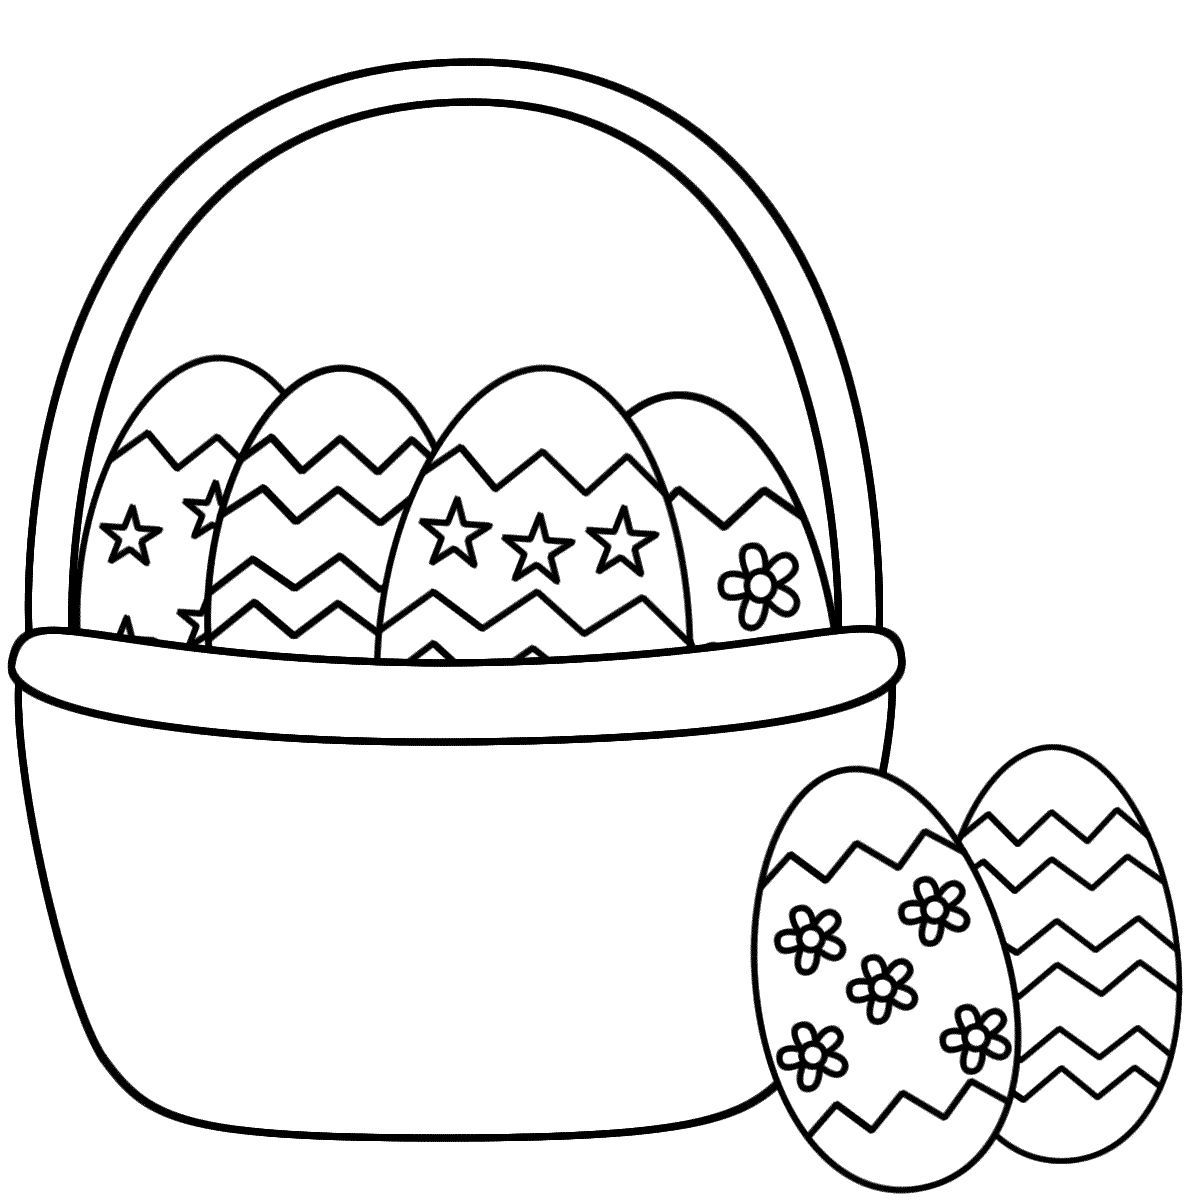 1200x1200 Easter Egg Basket Coloring Pages